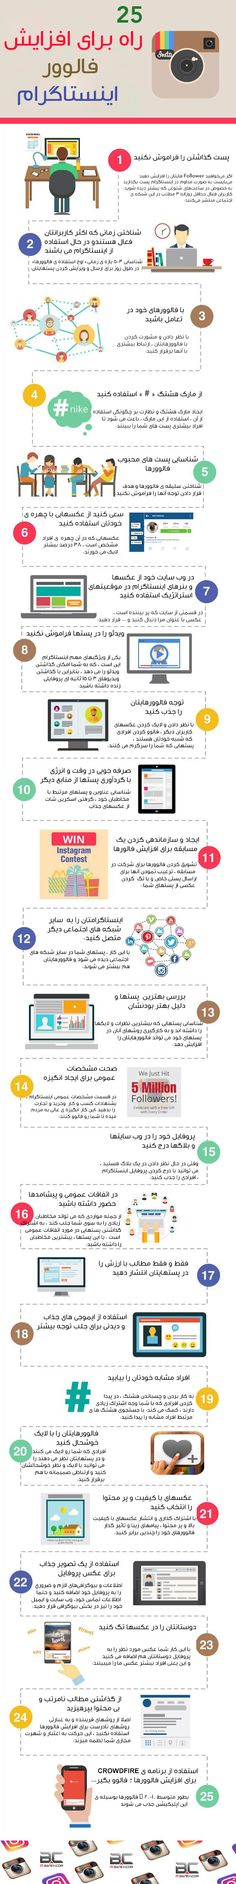 25  راهکار برای افزایش فالوور در #اینستاگرام Economics, Infographics, Psychology, Bullet Journal, Money, Business, Drawings, Amazing, Psicologia